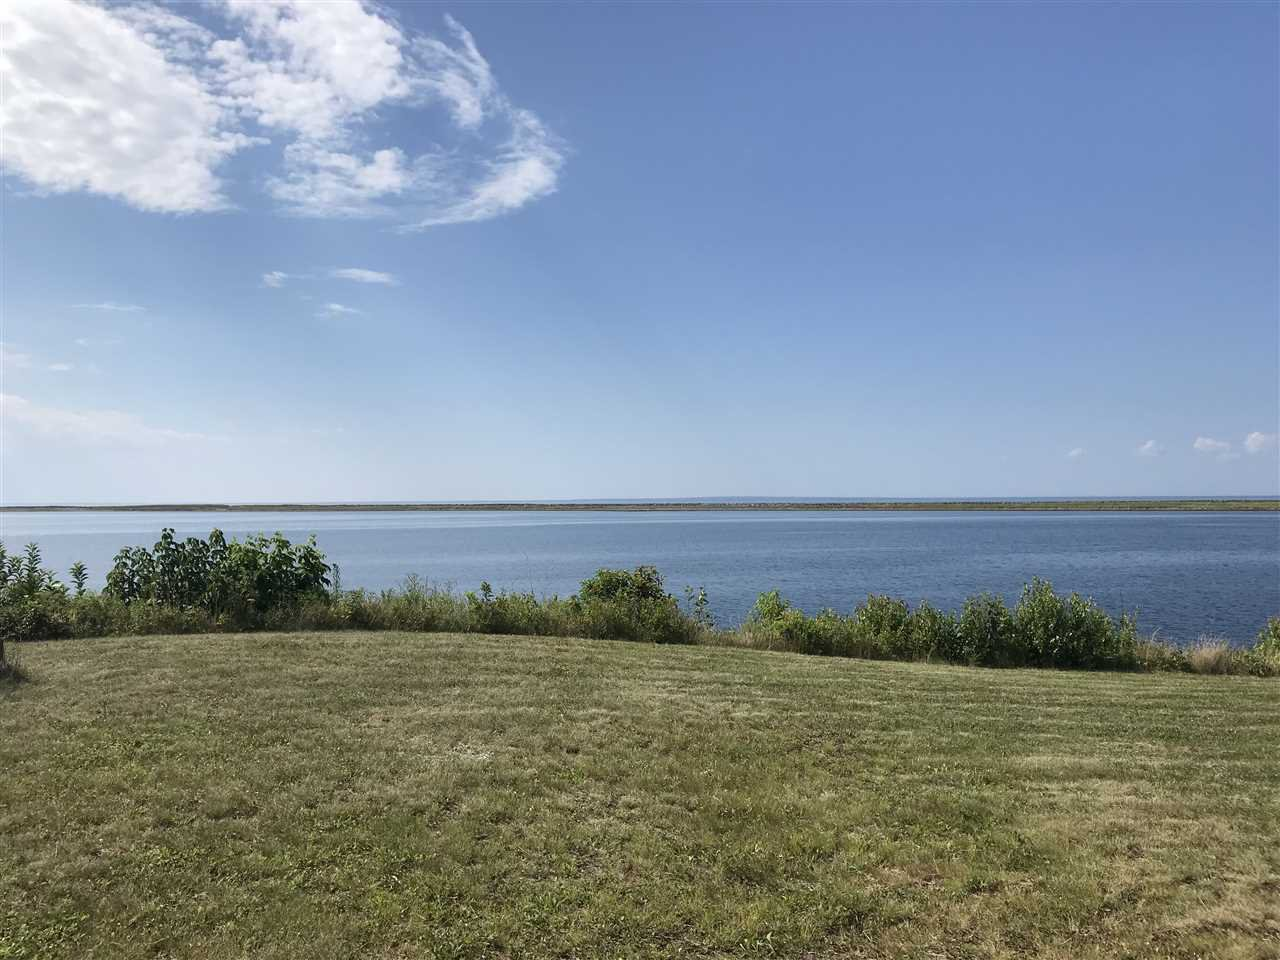 Main Photo: Lot 4 Shore Road in Lower Barneys River: 108-Rural Pictou County Vacant Land for sale (Northern Region)  : MLS®# 202015581